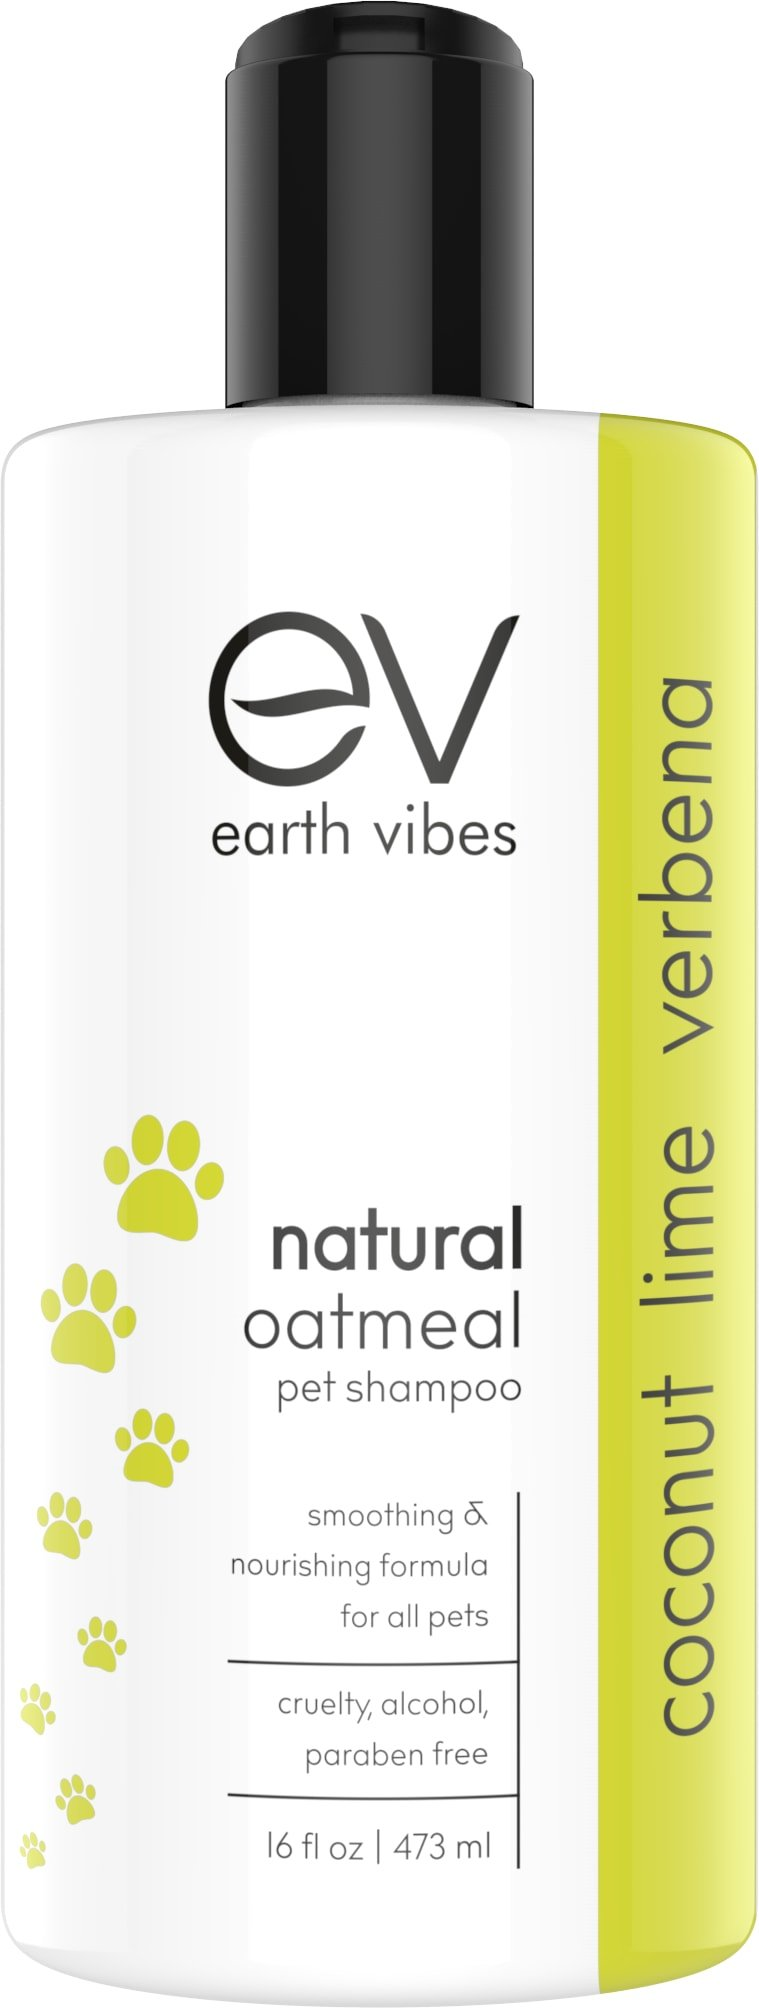 Earth Vibes Natural Oatmeal Pet Allergy Shampoo And Conditioner Wash For Pets Dogs Cats Puppy - Medicated Clinical Vet Organic Aloe Vera Formula For Dry Itchy Sensitive Skin - Cruelty & Paraben Free